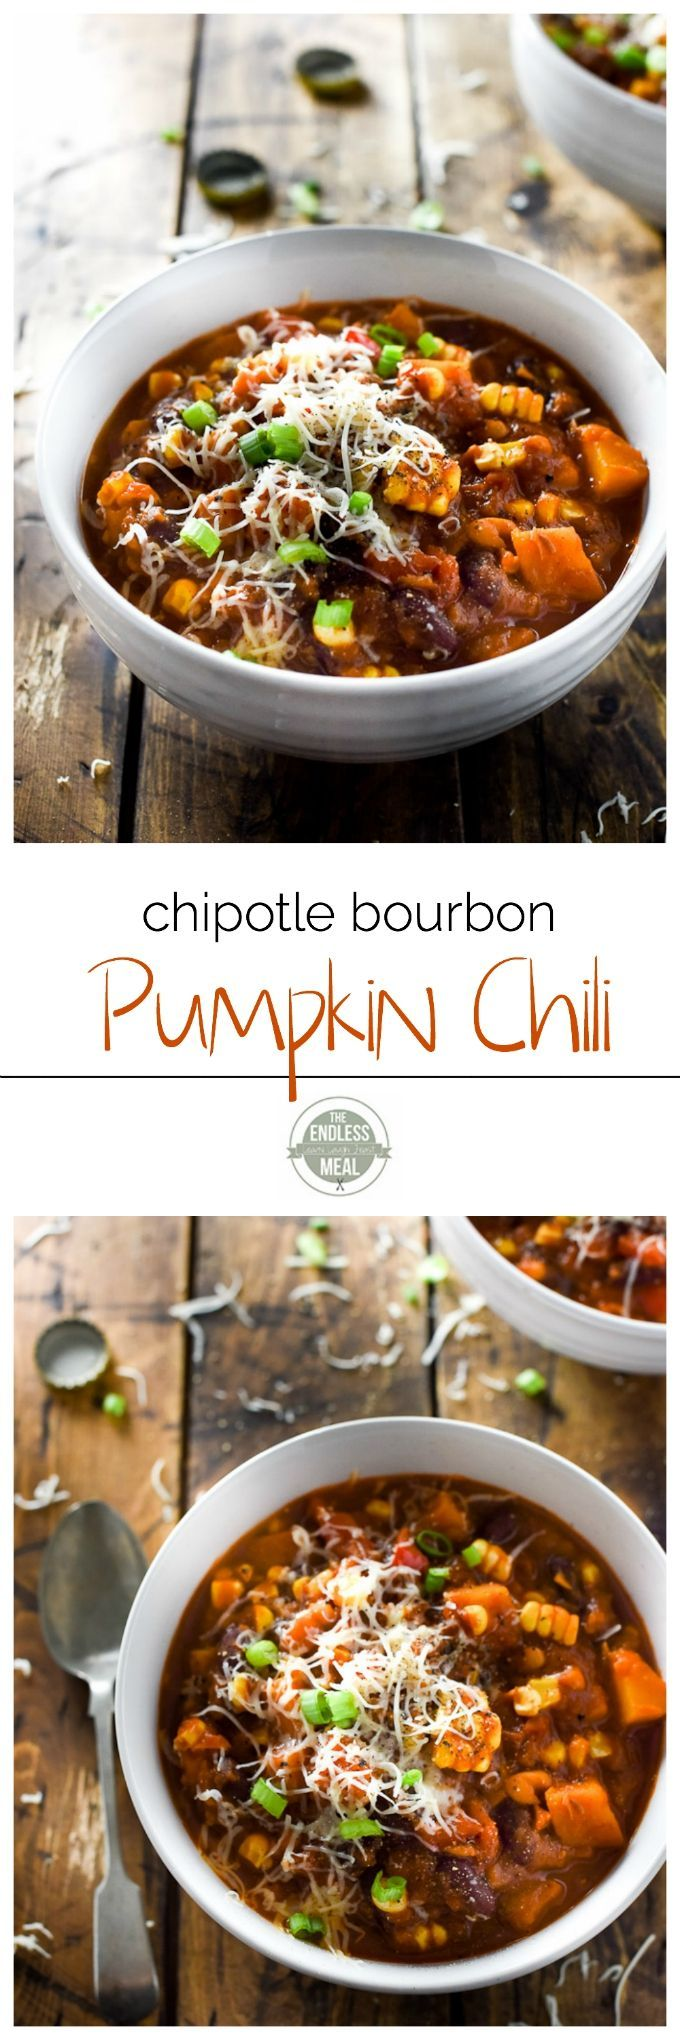 Chipotle Bourbon Pumpkin Chili is a delicious and easy to make fall dinner. | theendlessmeal.com